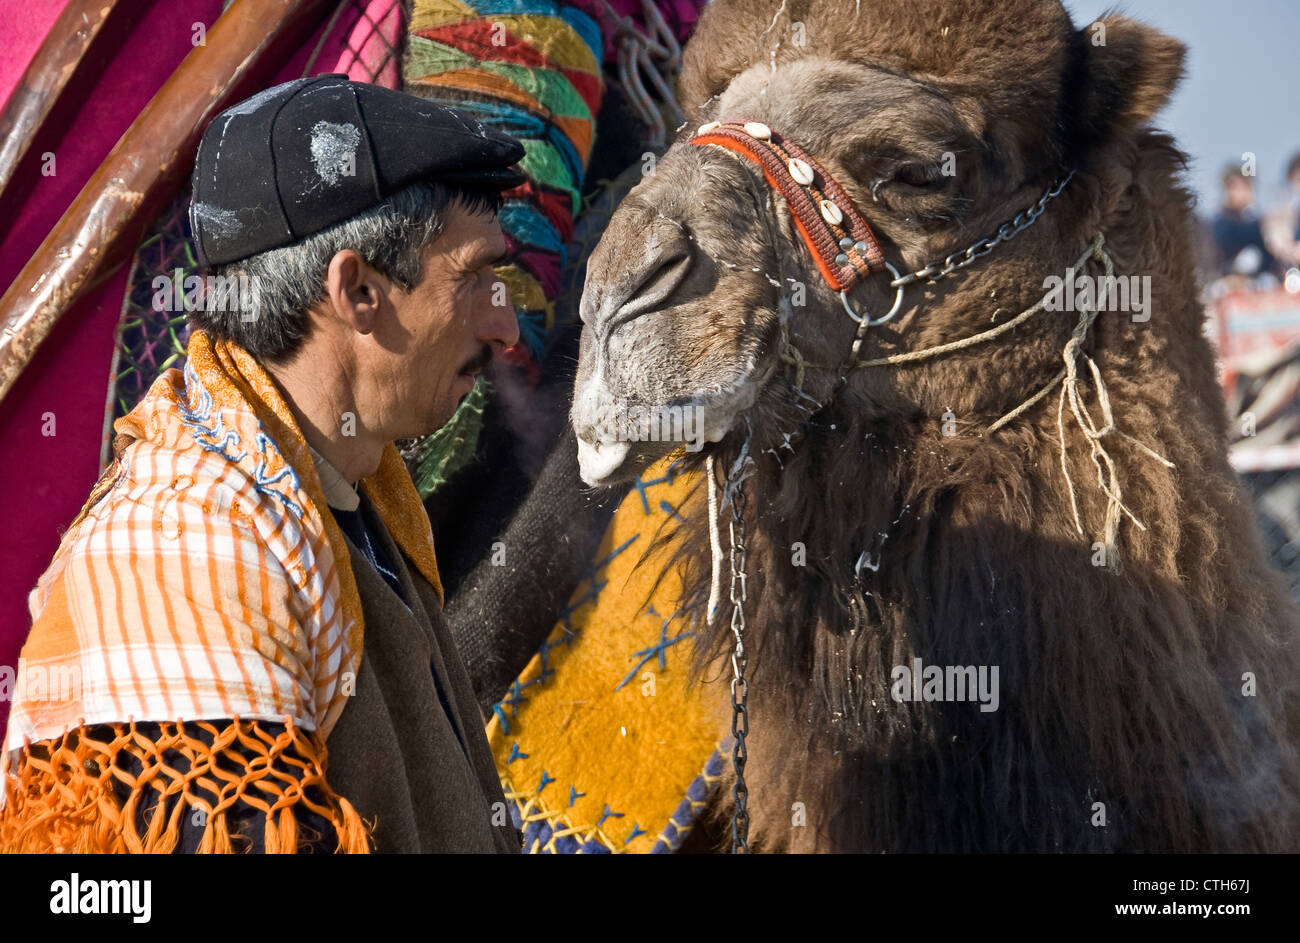 Camel Fights, Izmir. Turkey. - Stock Image